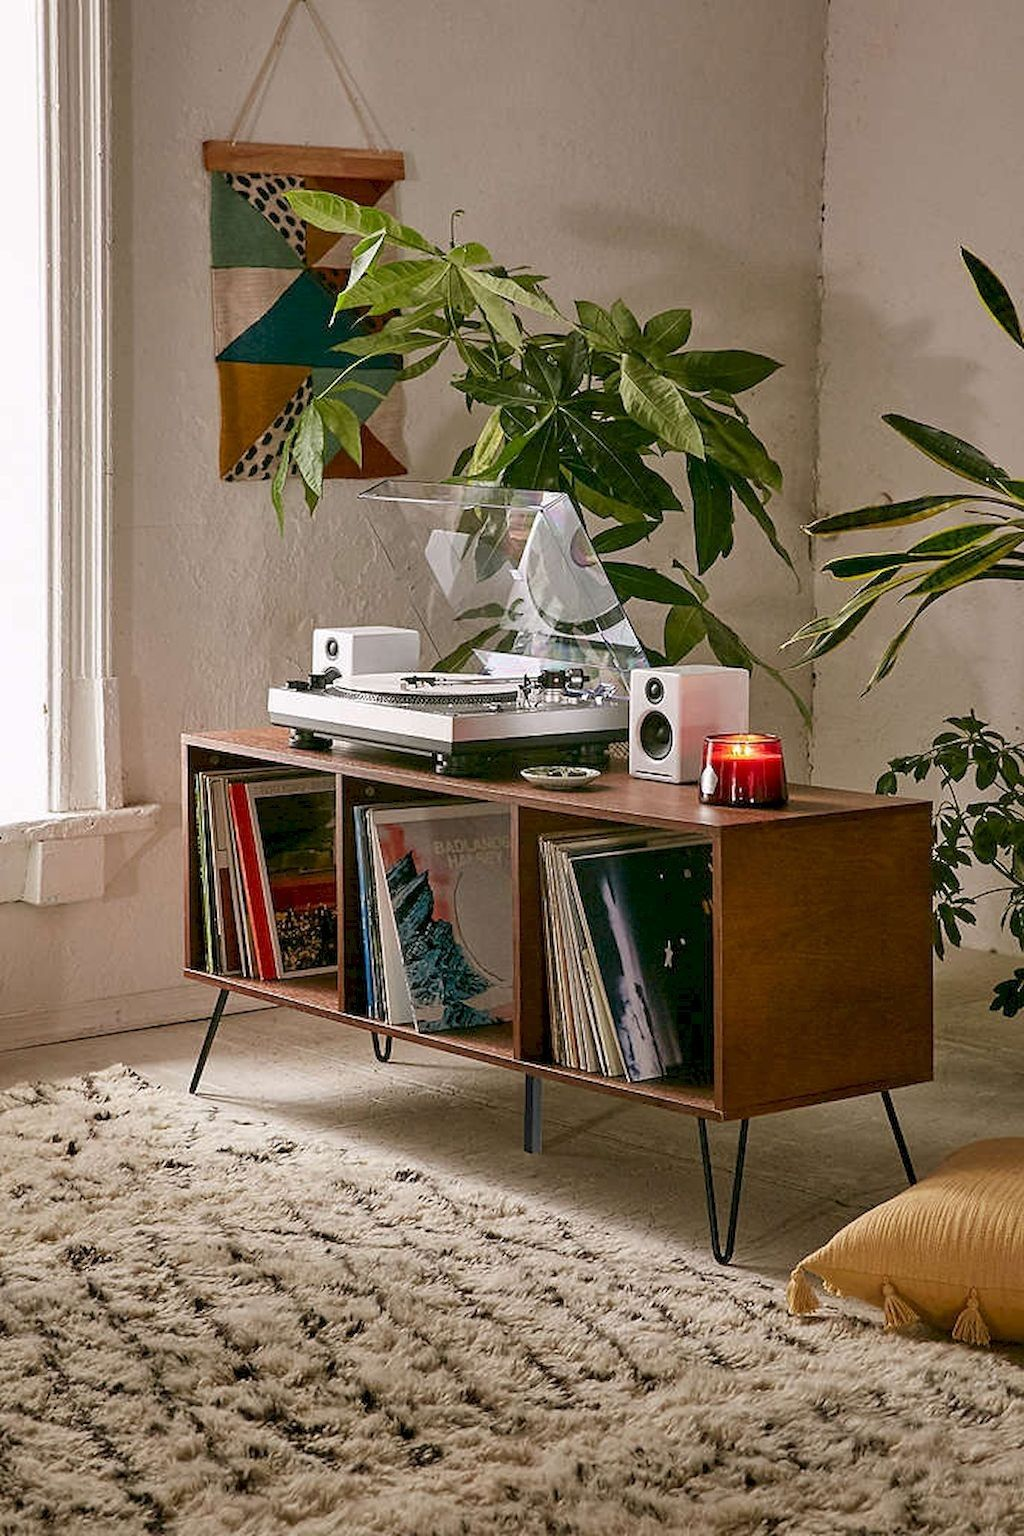 45+Arresting Retro Living Room Decorating Ideas on A Budget #livingroomideas